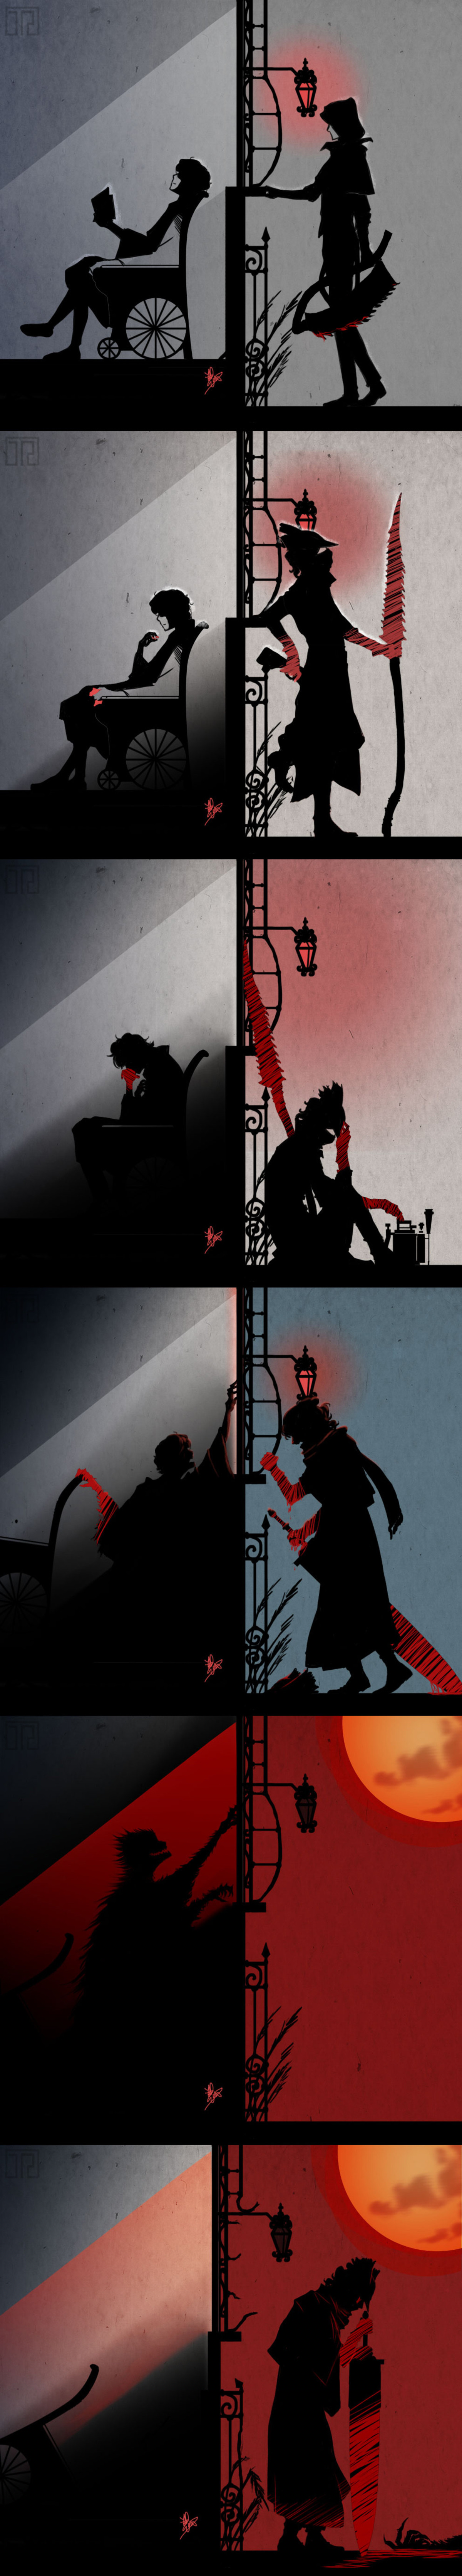 Whether they be man or beast the Hunter hunts.... Source: .. Feels bad man